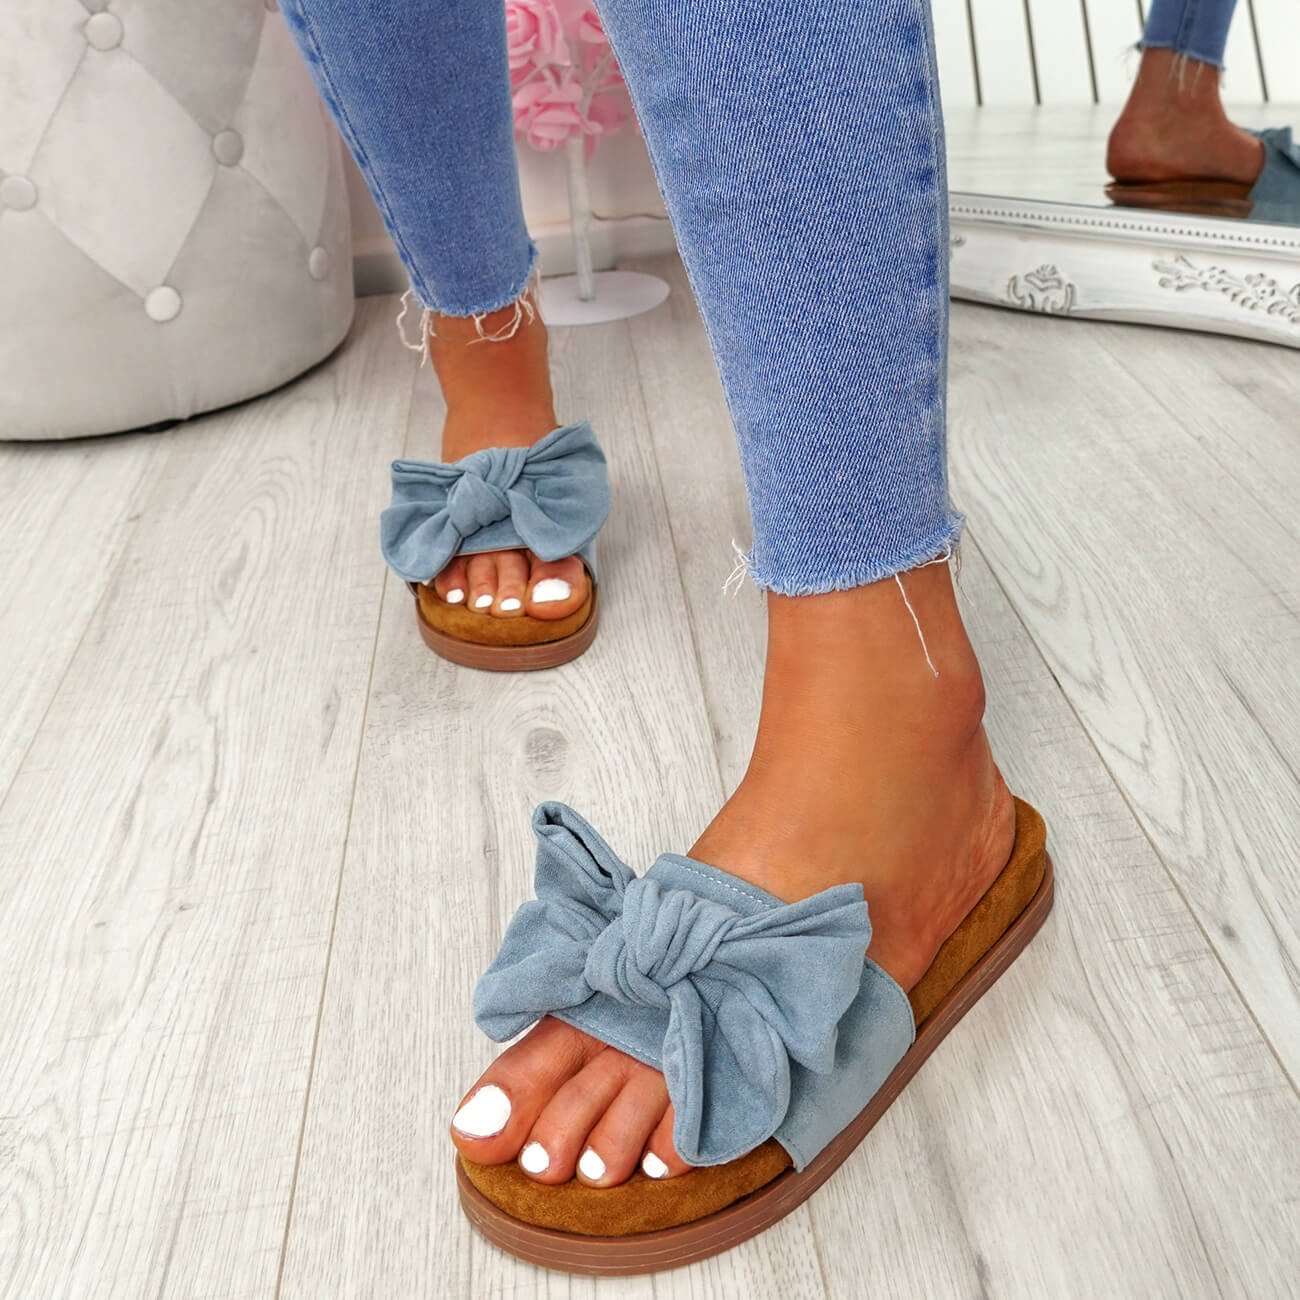 WOMENS-LADIES-FLAT-SANDALS-FRONT-BOW-COMFY-SUMMER-CASUAL-HOLIDAY-SHOES-SIZE-UK thumbnail 19